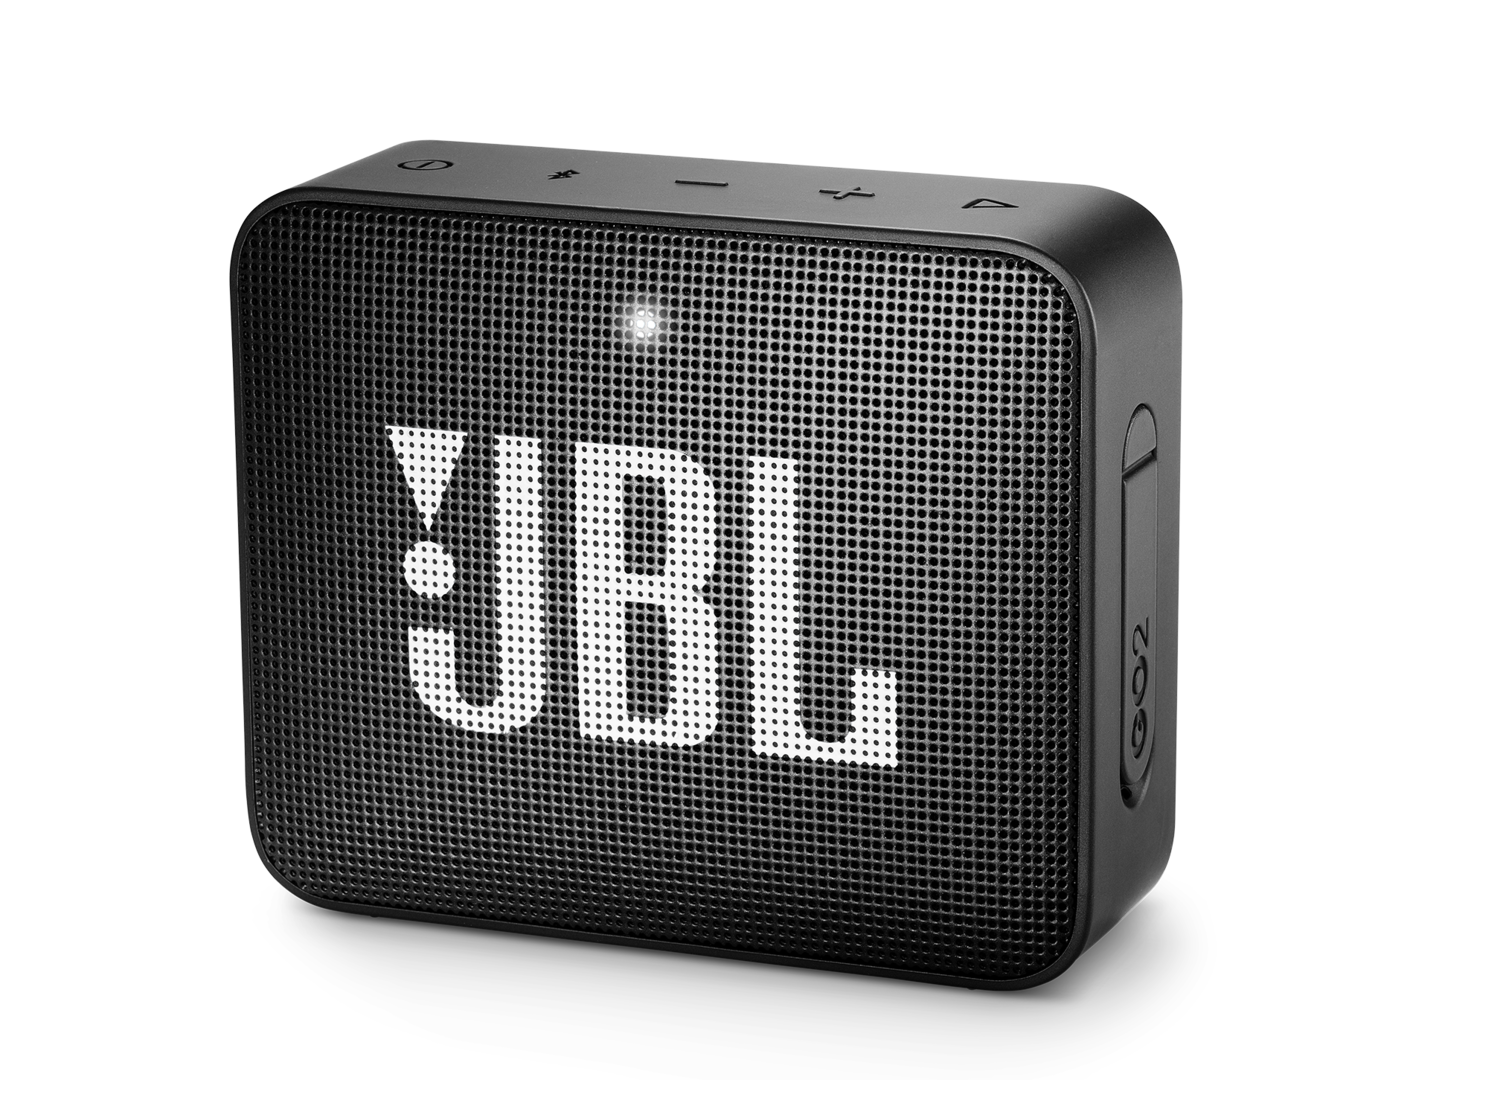 "<span style=""font-weight: bold;"">JBL Go 2</span>&nbsp; <br>"